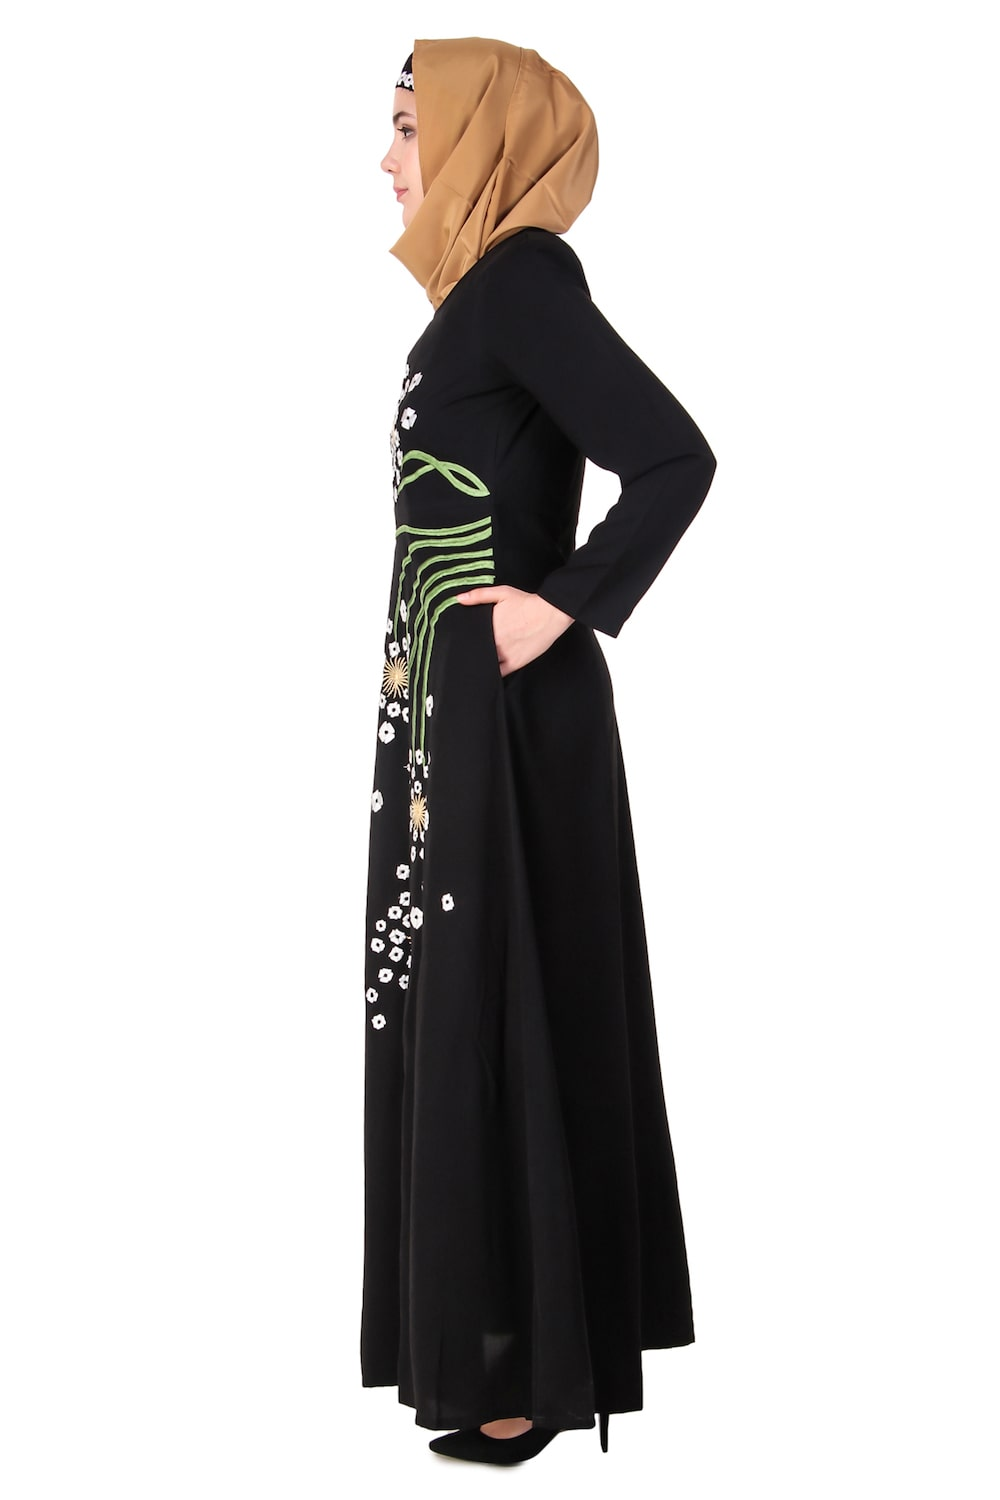 Abstract Floral Design Anarkali Abaya